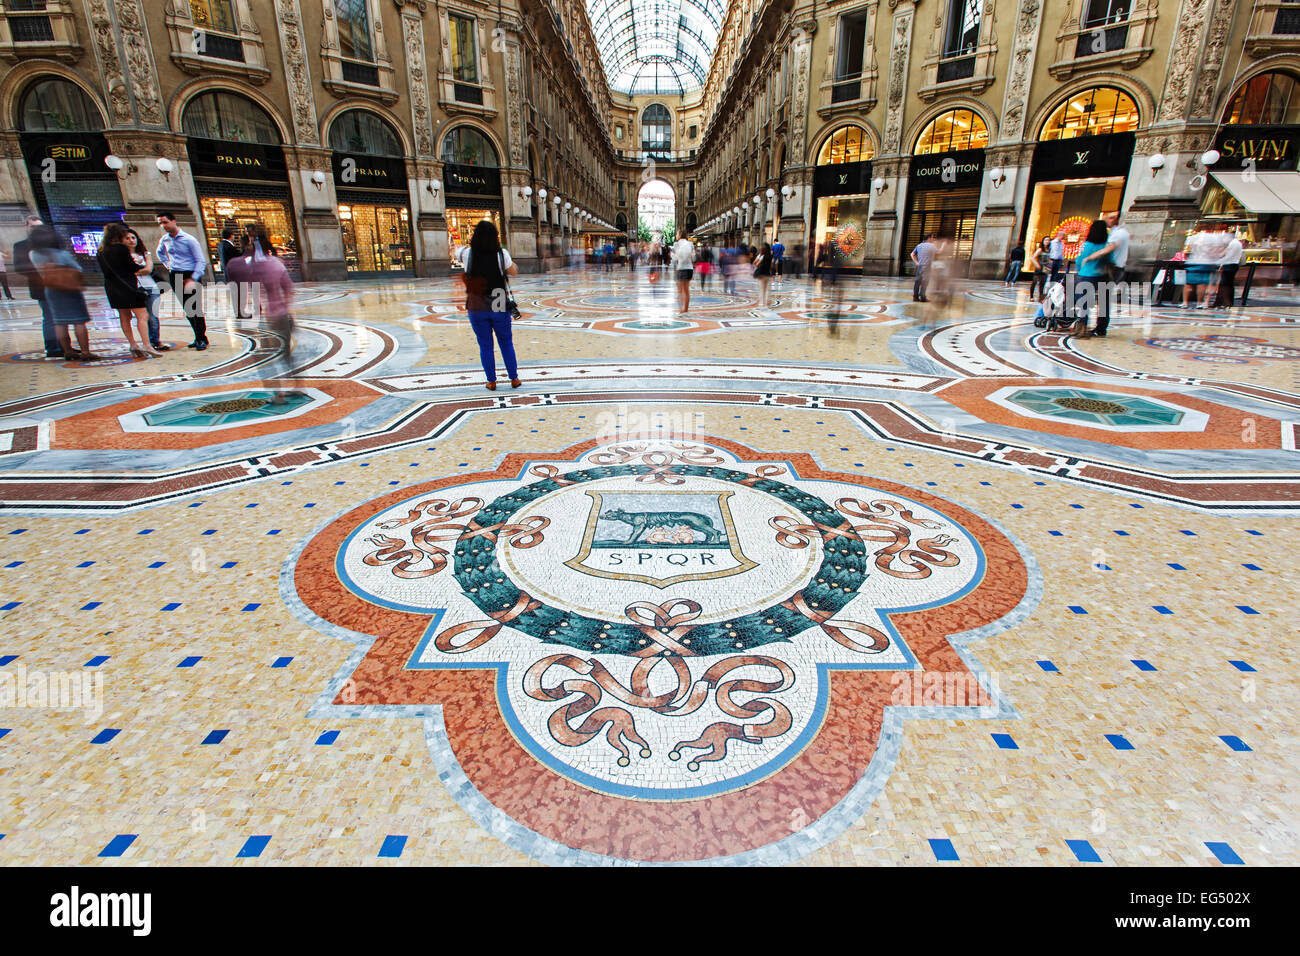 Mosaic floor, shops and shoppers, Galleria Vittorio Emanuele, Milan, Italy - Stock Image